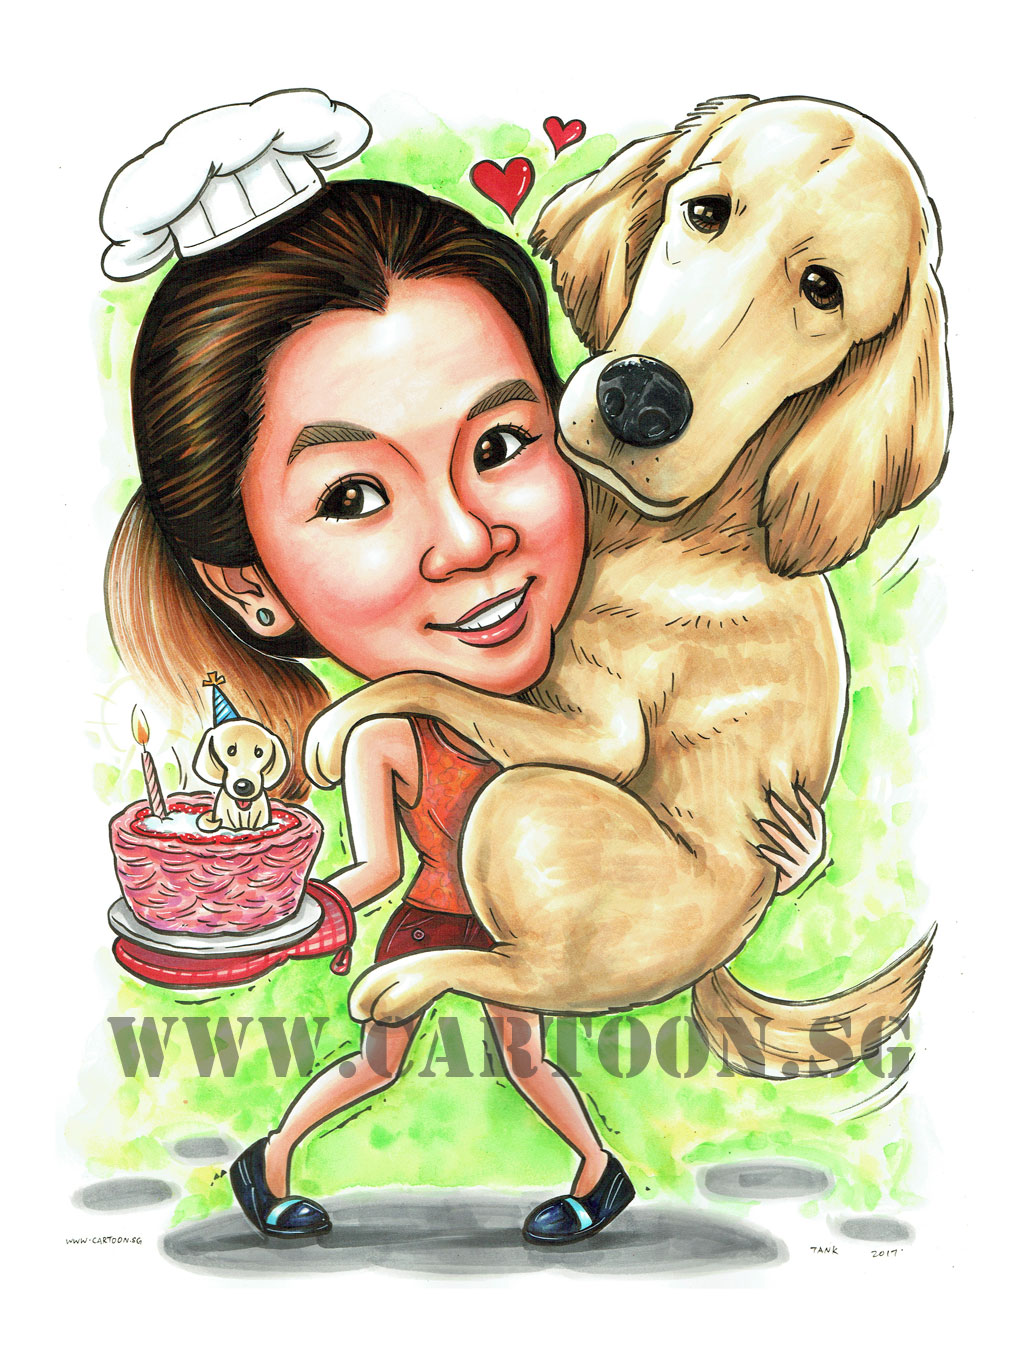 2017-07-13-Caricature-Singapore-gift-pet-dog-bake-cake-hug.jpg